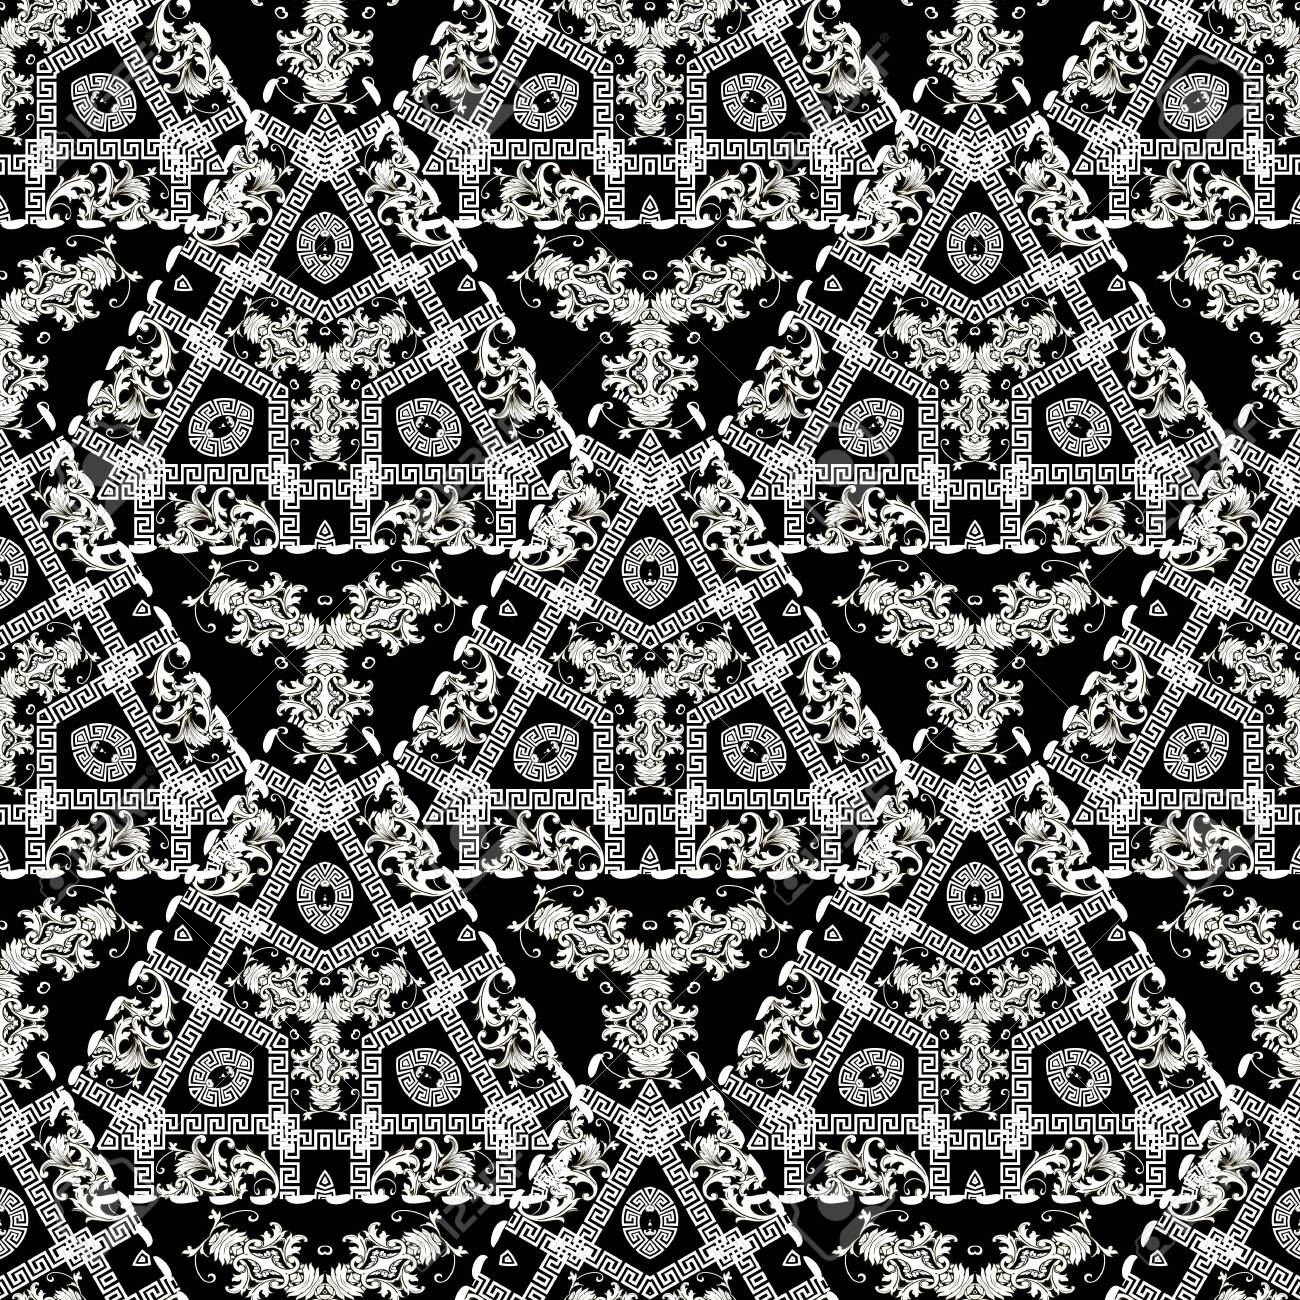 Geometric modern greek vector seamless pattern. Baroque ornamental floral background. Abstract black and white greek key meanders ornament with triangles, baroque vintage flowers, stitching lines. - 130405201